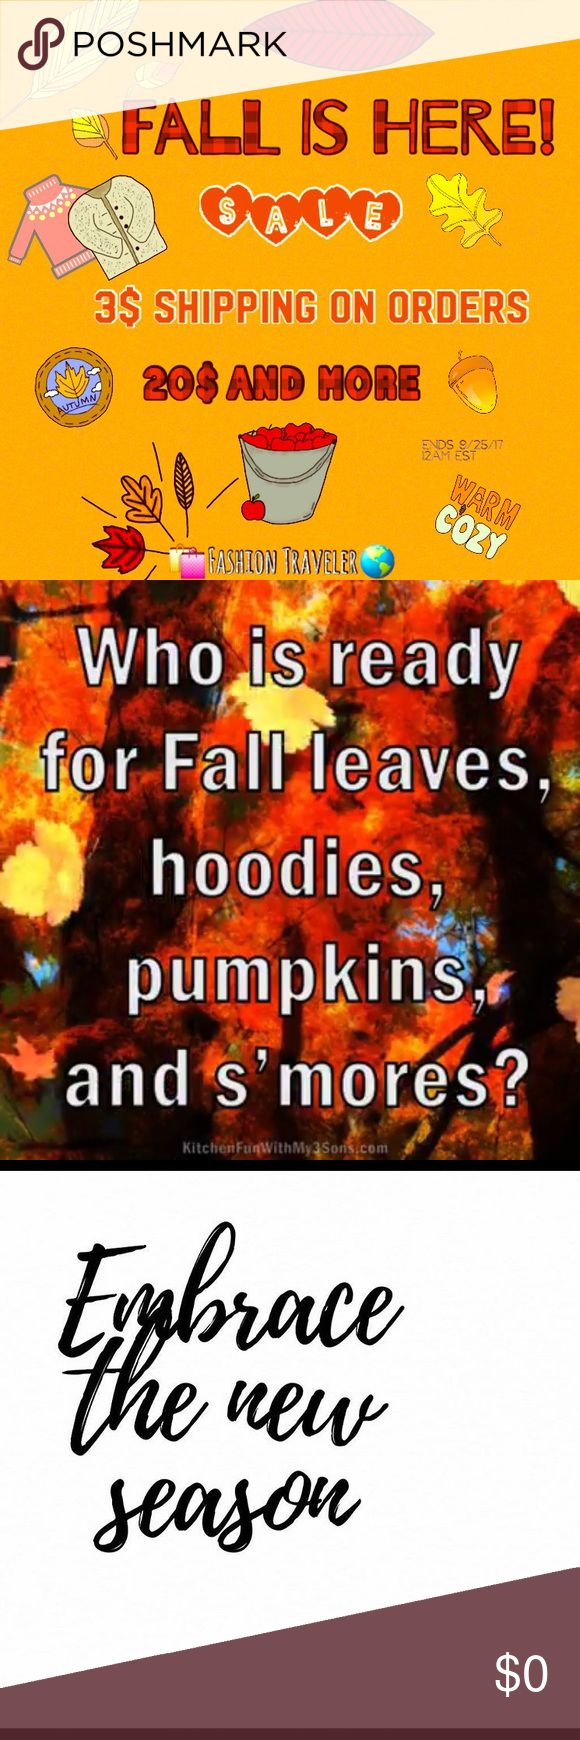 🌰🍁🍂🌻ITS HERE!!! In celebration of my favorite season! Hail autumn 🍂🙌🏽 I want to share my closet on discount. So not only do I live in the most beautiful area 🙌🏽*New England*! Autumn is a ritual of  🍎 🎃 picking but we love our PSL. And we have some of the greatest BASIC BETCH gear. So check out my digs. I shop all vintage Brooklyn. Exclusive NYC and Boutique Greenwich. Everything I share is in excellent condition. And very reasonably priced. So share on & Bundle. *!Bring out ur New…